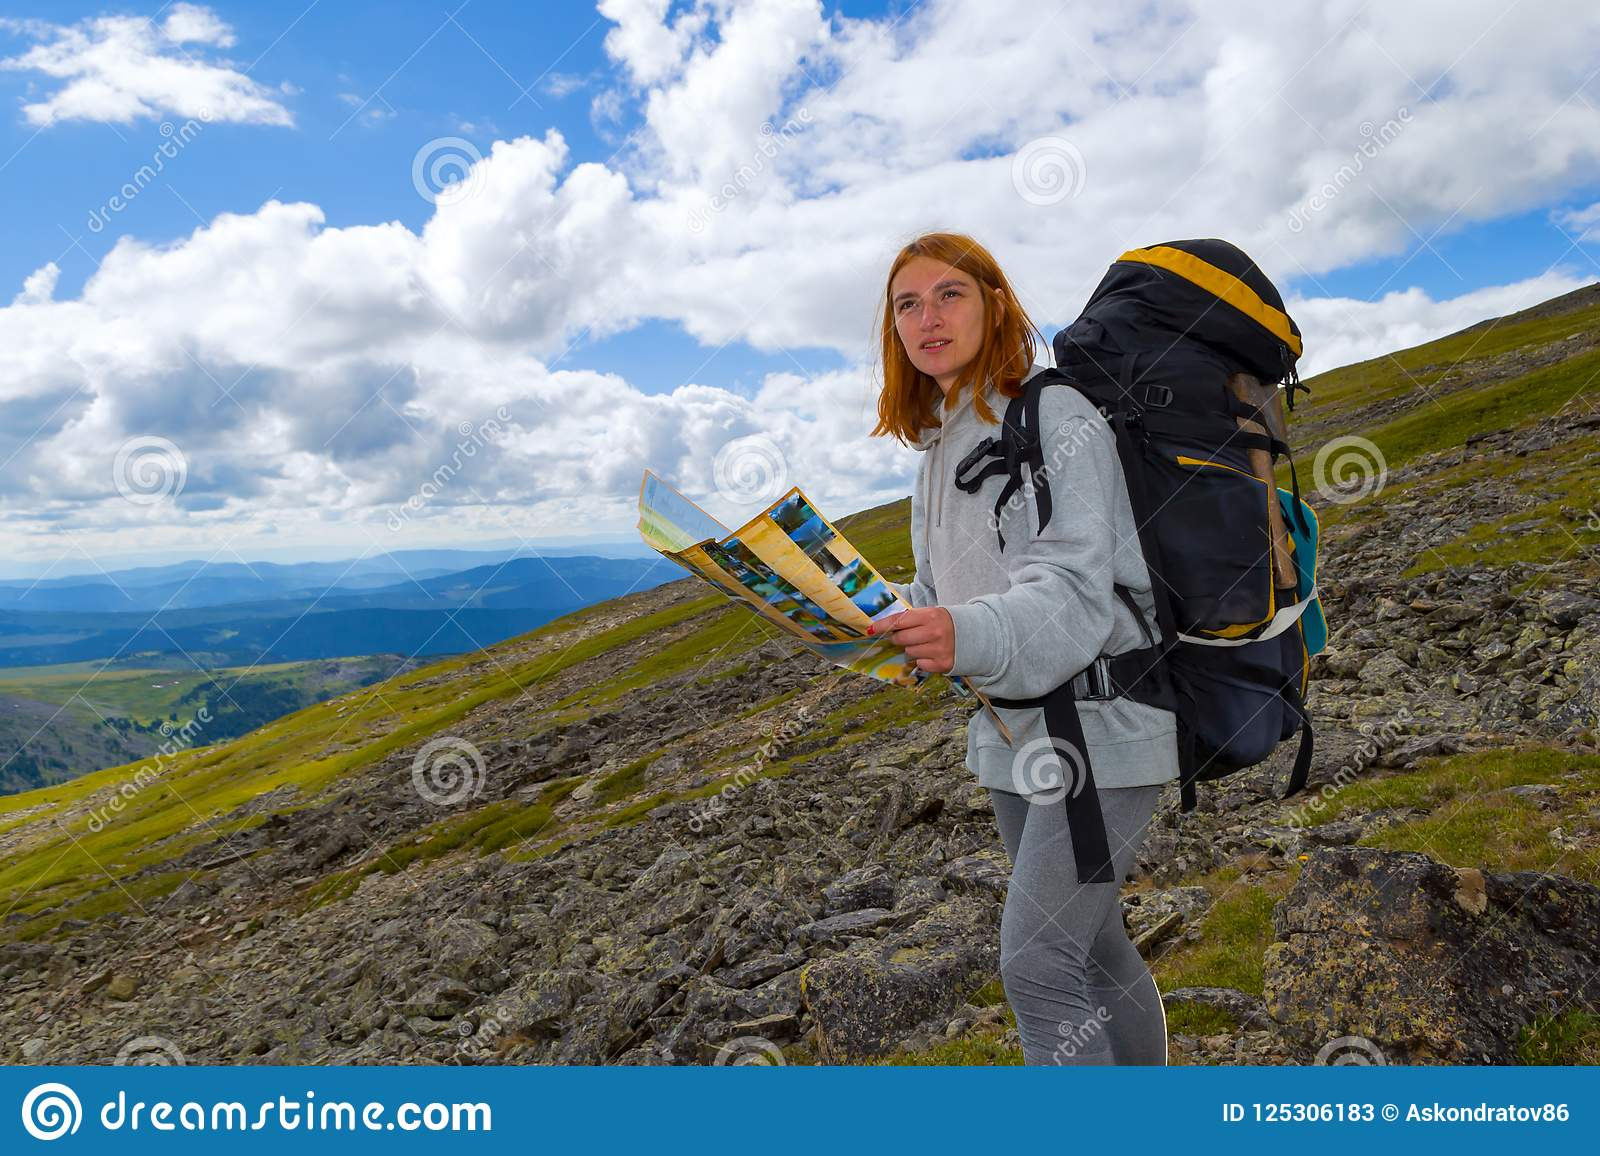 The redhead girl tourist makes a route on the map in her hands,